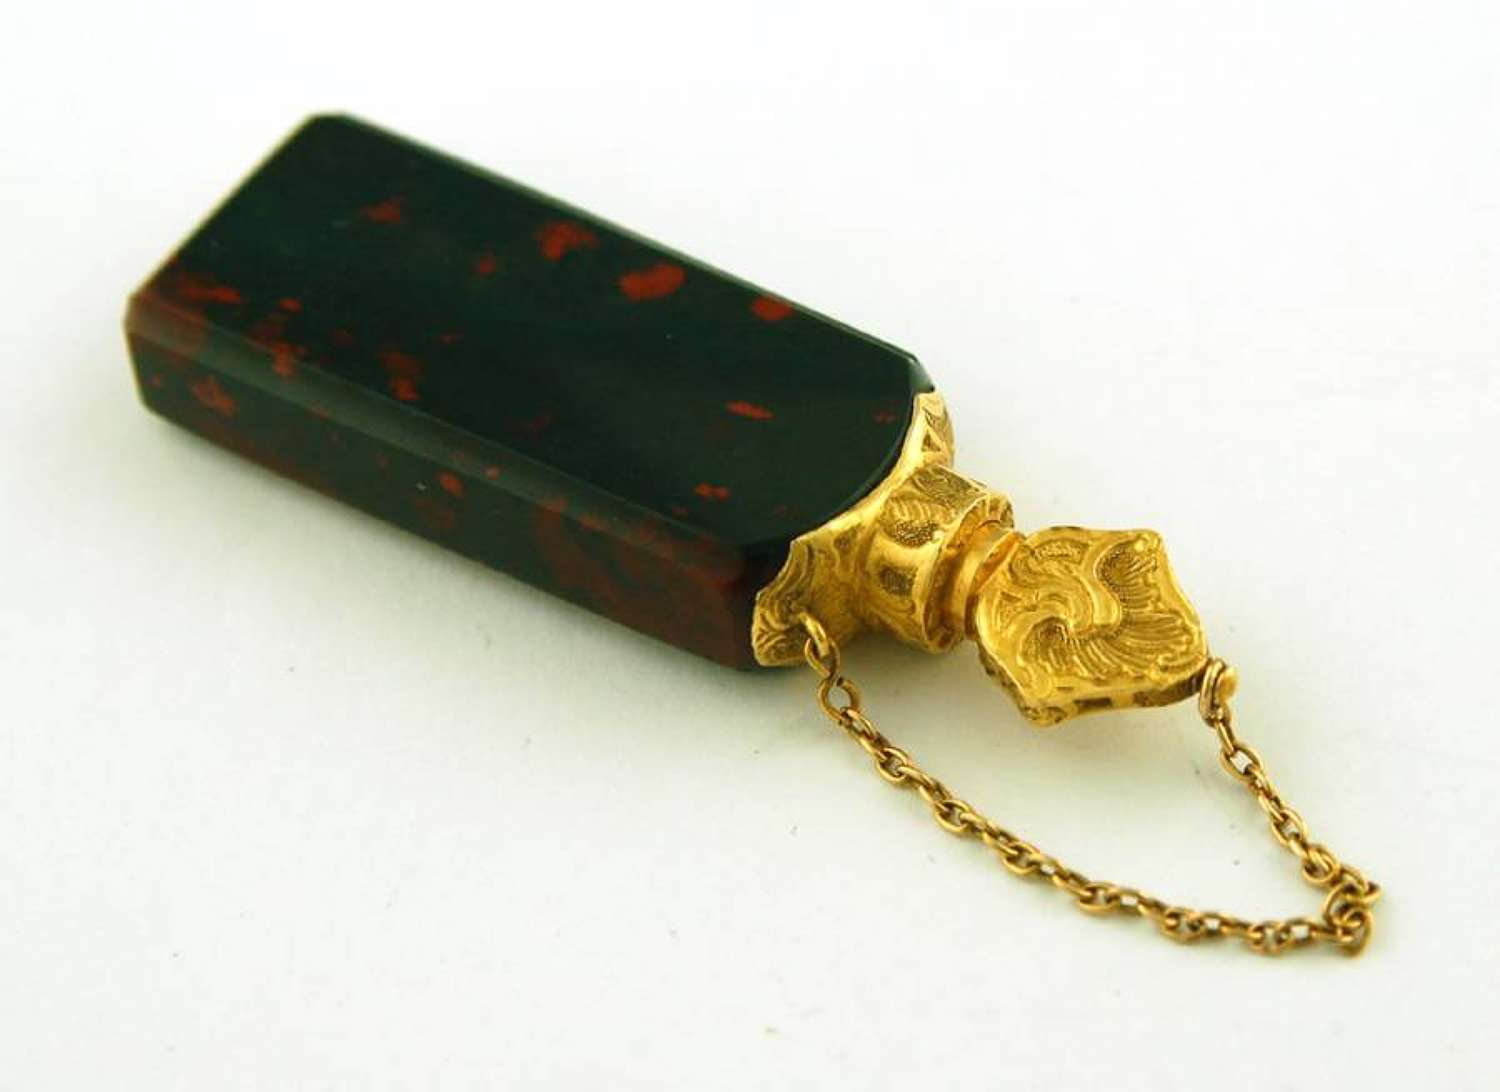 Bloodstone and gold scent